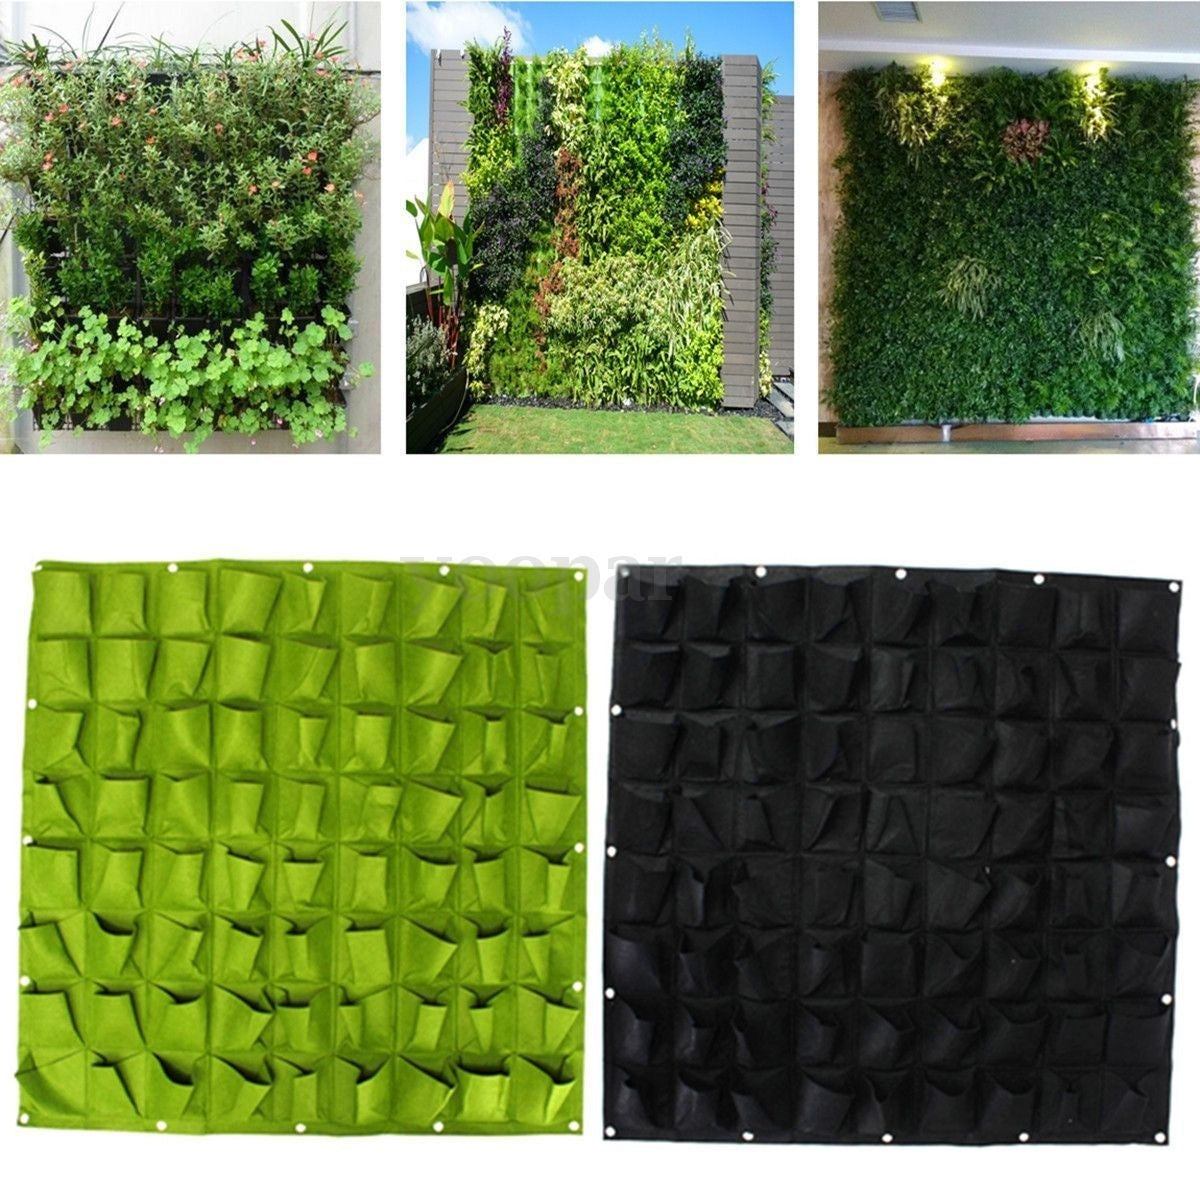 72 Pockets Hanging Garden Wall Flower Planter Bag Indoor Outdoor